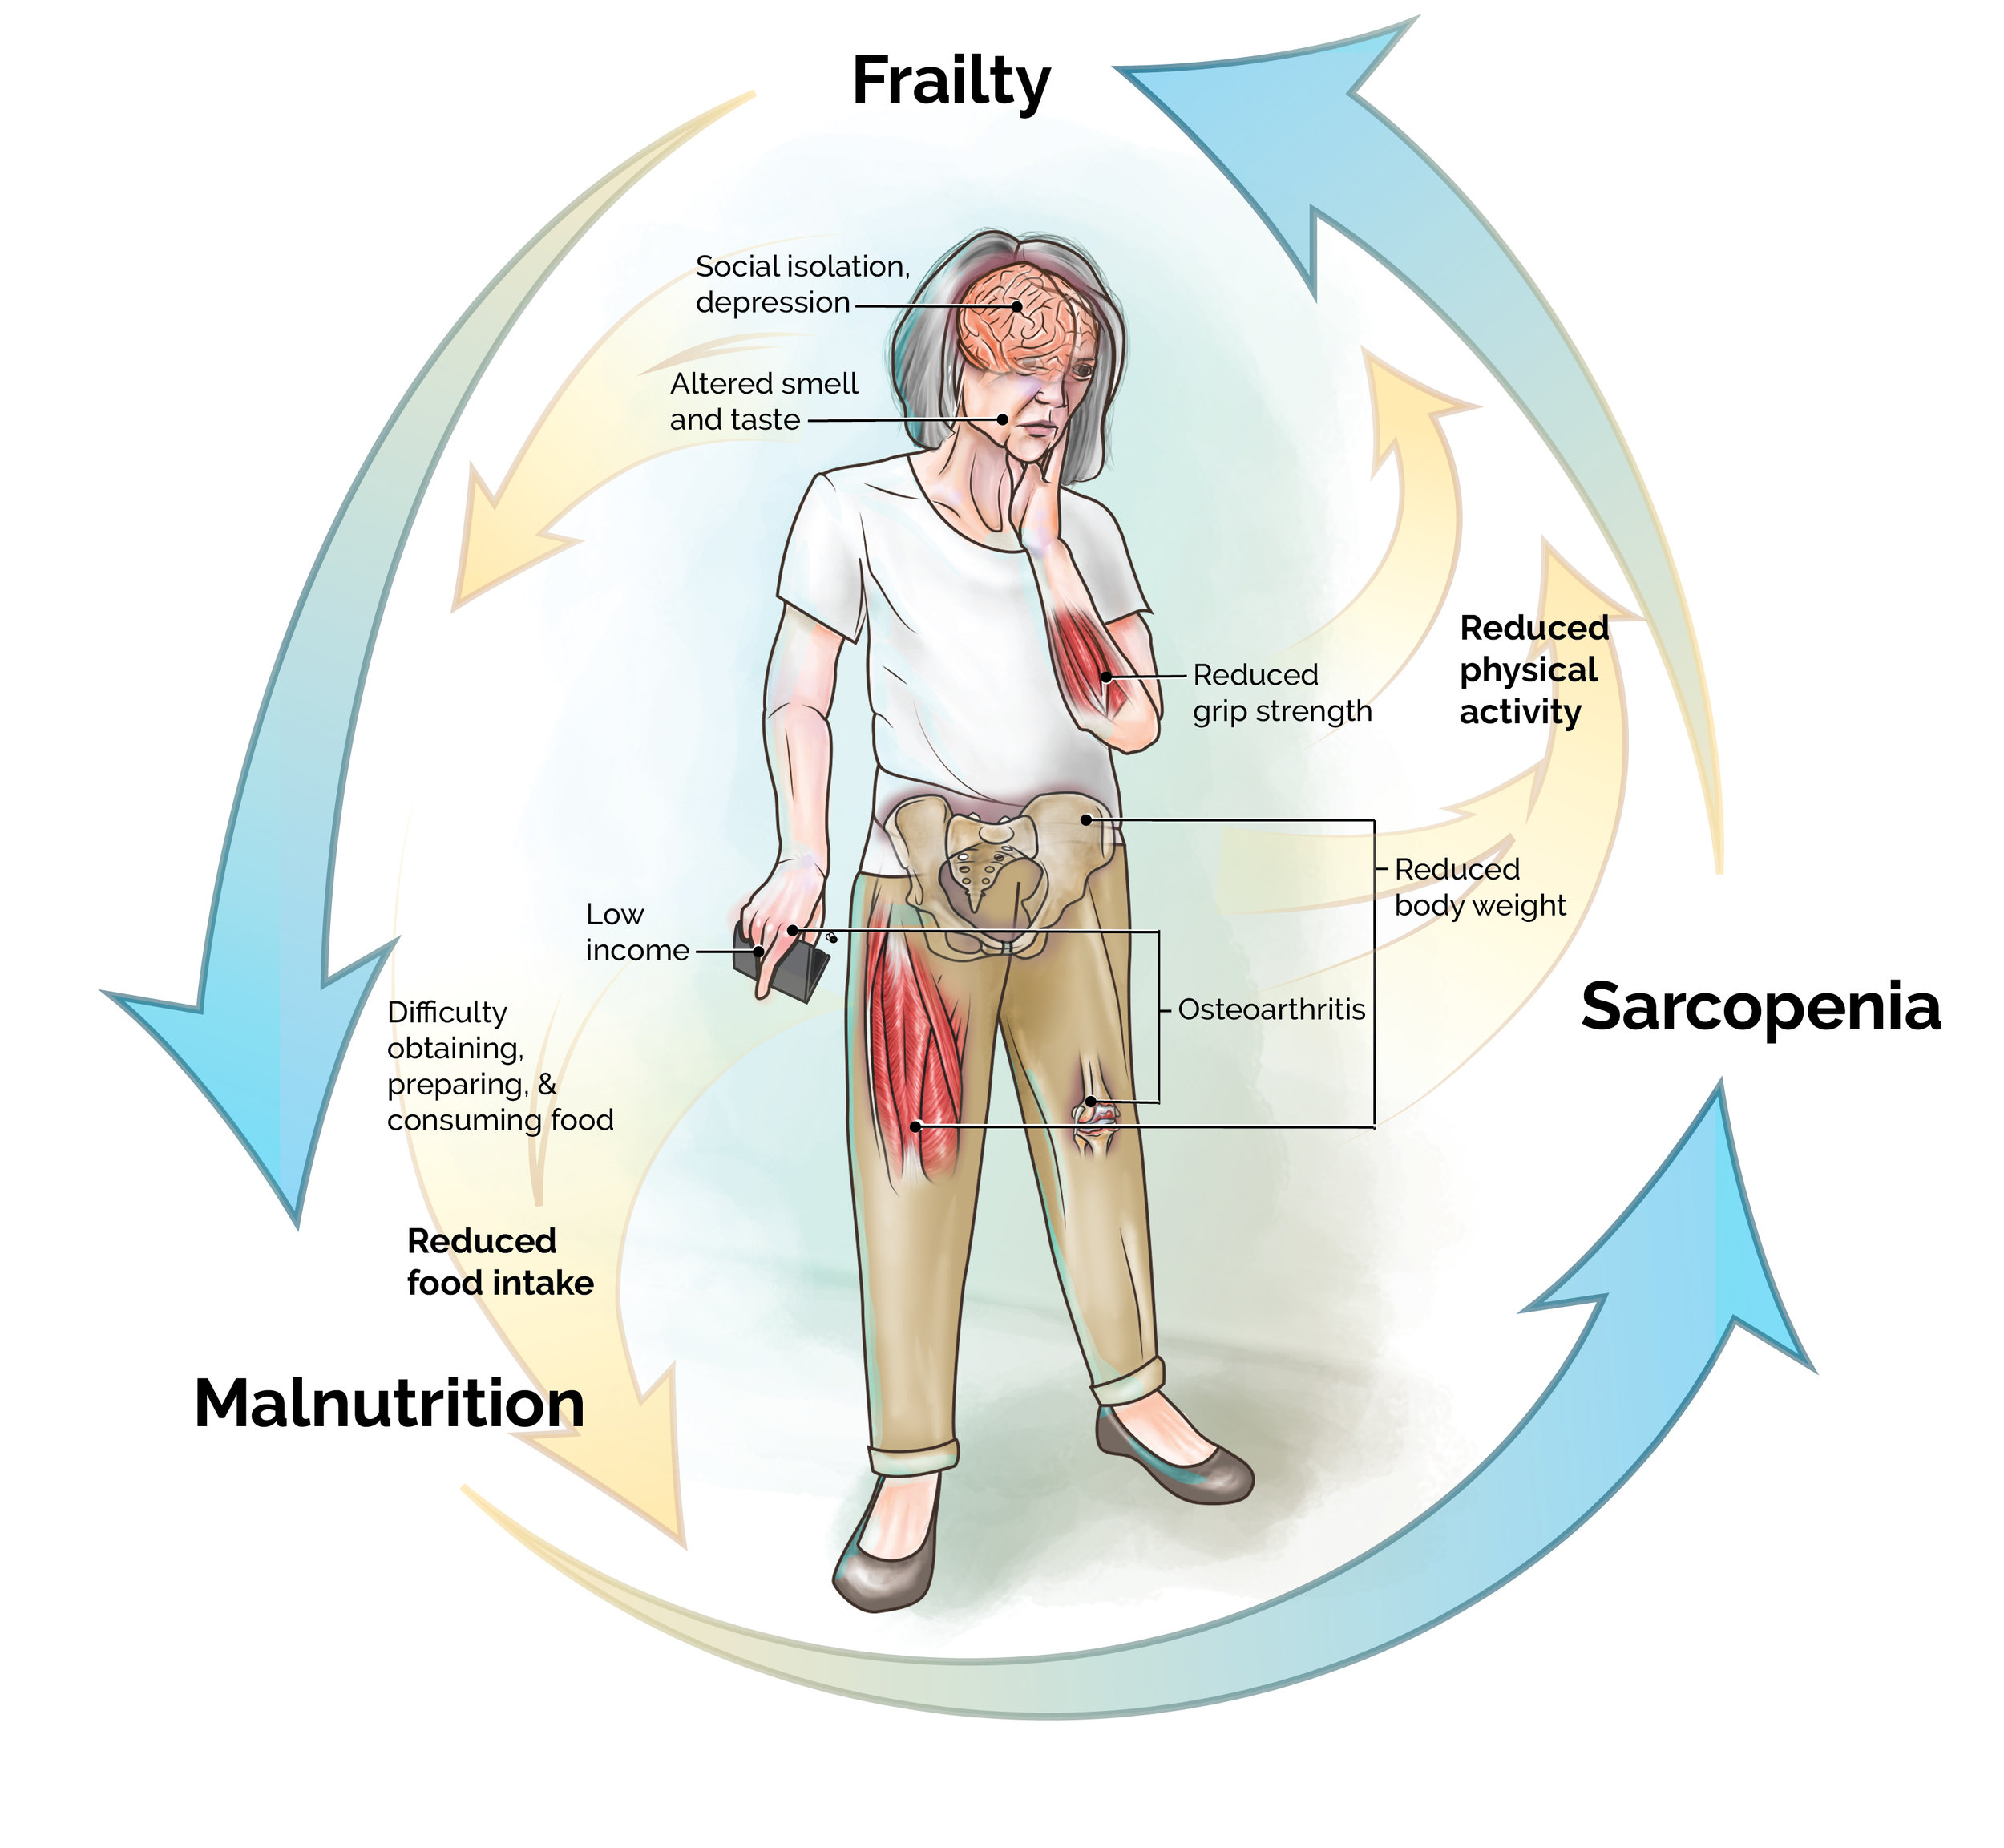 Severin, R., Berner, P. M., Miller, K. L., & Mey, J. (2019). The Crossroads of Aging: An Intersection of Malnutrition, Frailty, and Sarcopenia.  Topics in Geriatric Rehabilitation ,  35 (1), 79-87.